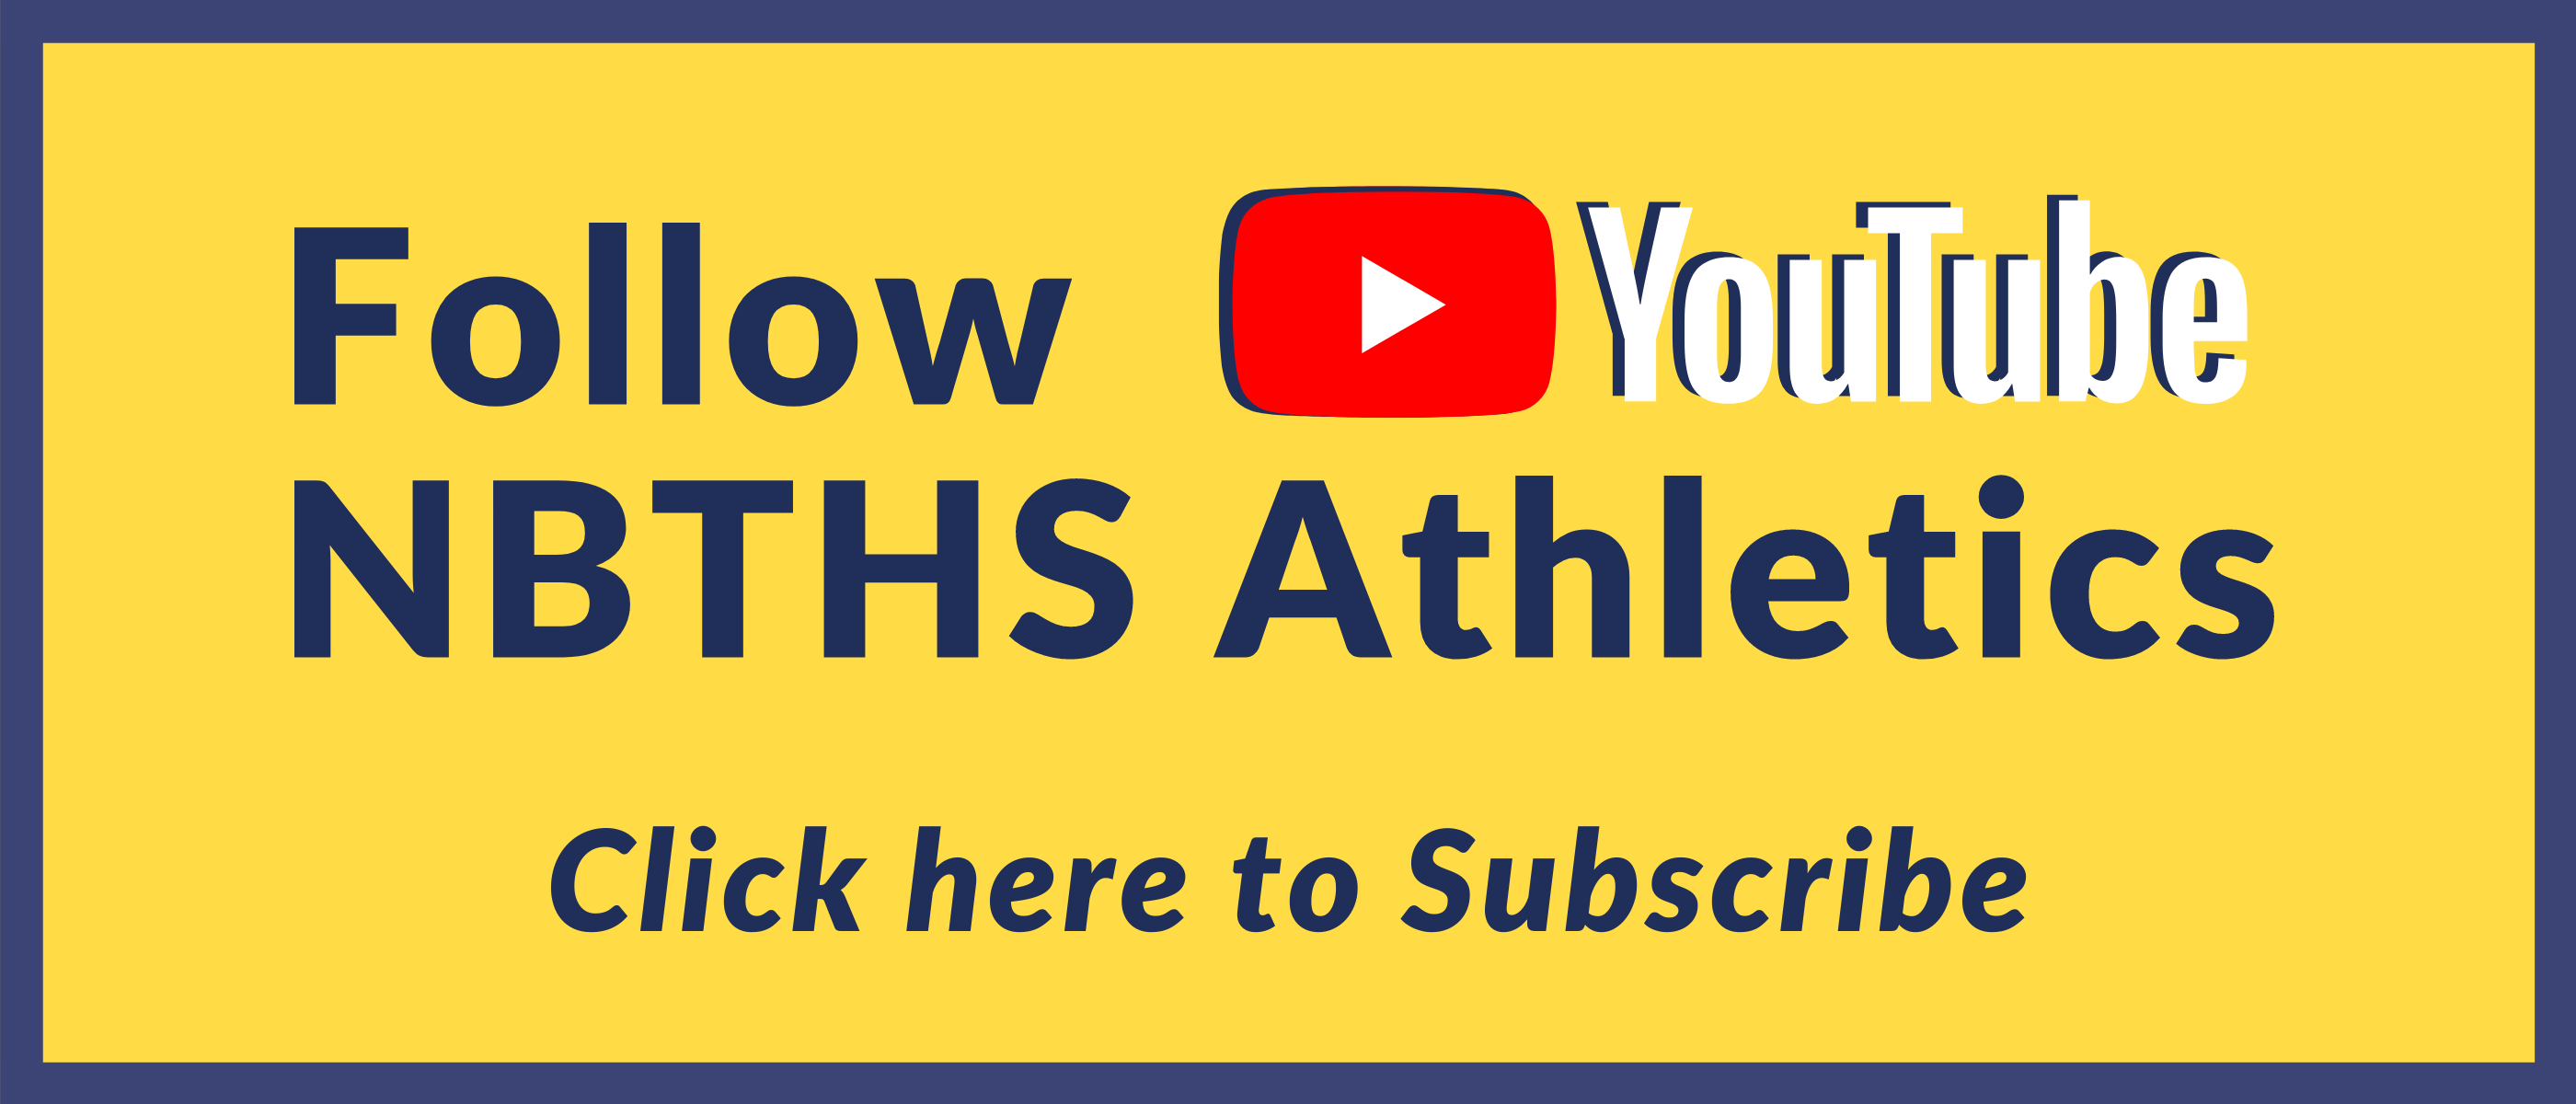 FOLLOW YOUTUVE NBTHS ATHLETICS - CLICK HERE TO SUBSCRIBE